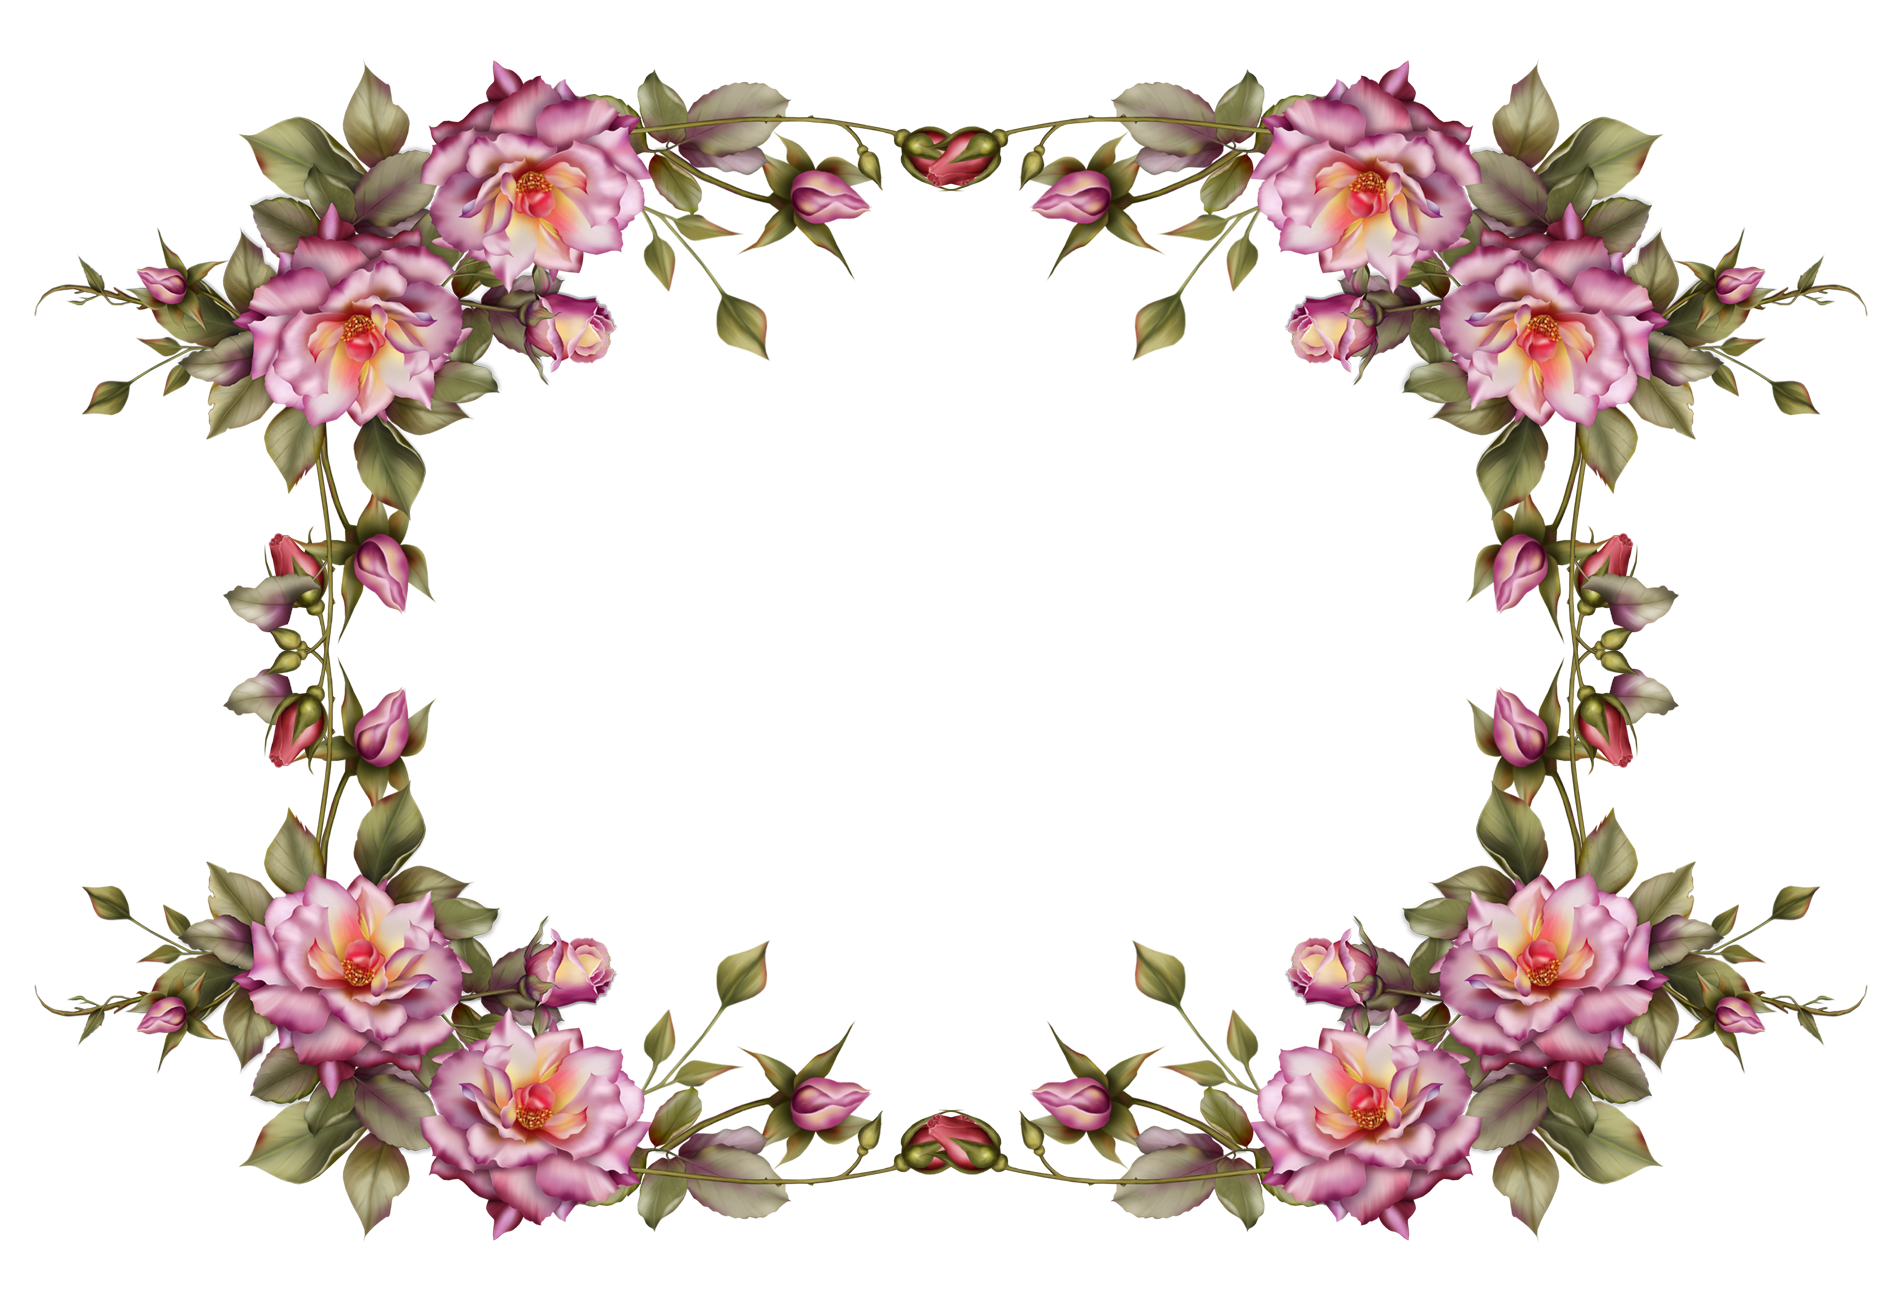 Vintage flower border clipart clip royalty free library flower_frame_by_collect_and_creat-d69ijjv.png (1904×1304) | Frames ... clip royalty free library